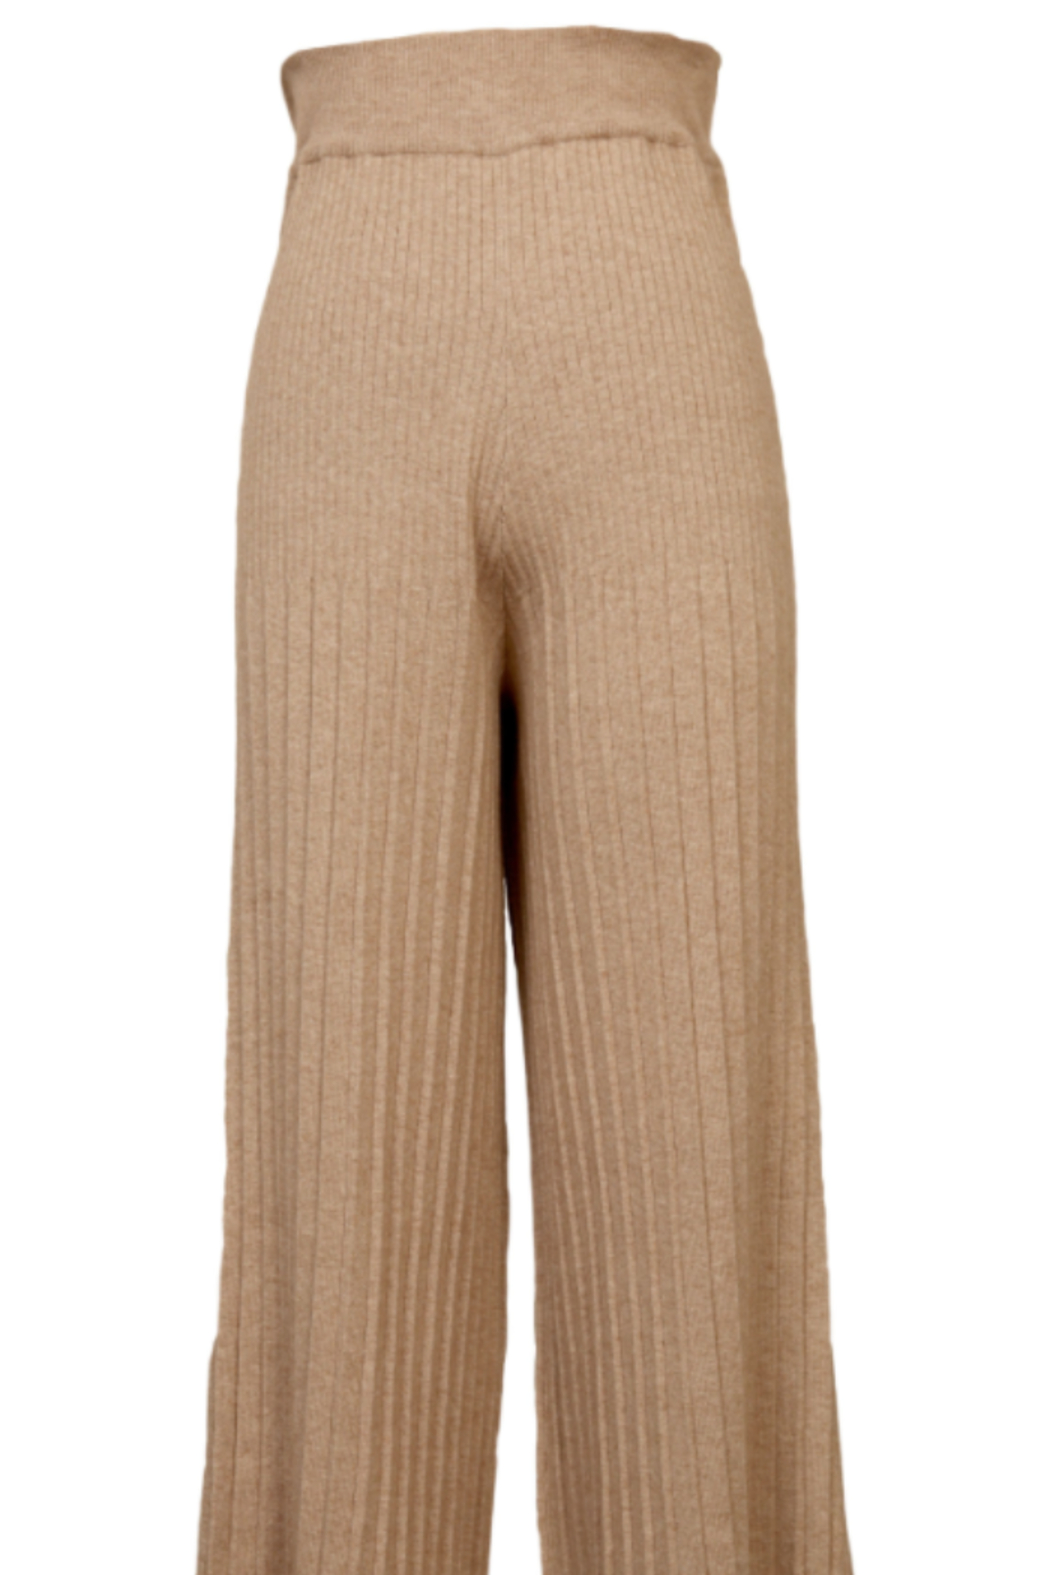 Line & Dot Reagan Ribbed Sweater Pant - Front Cropped Image